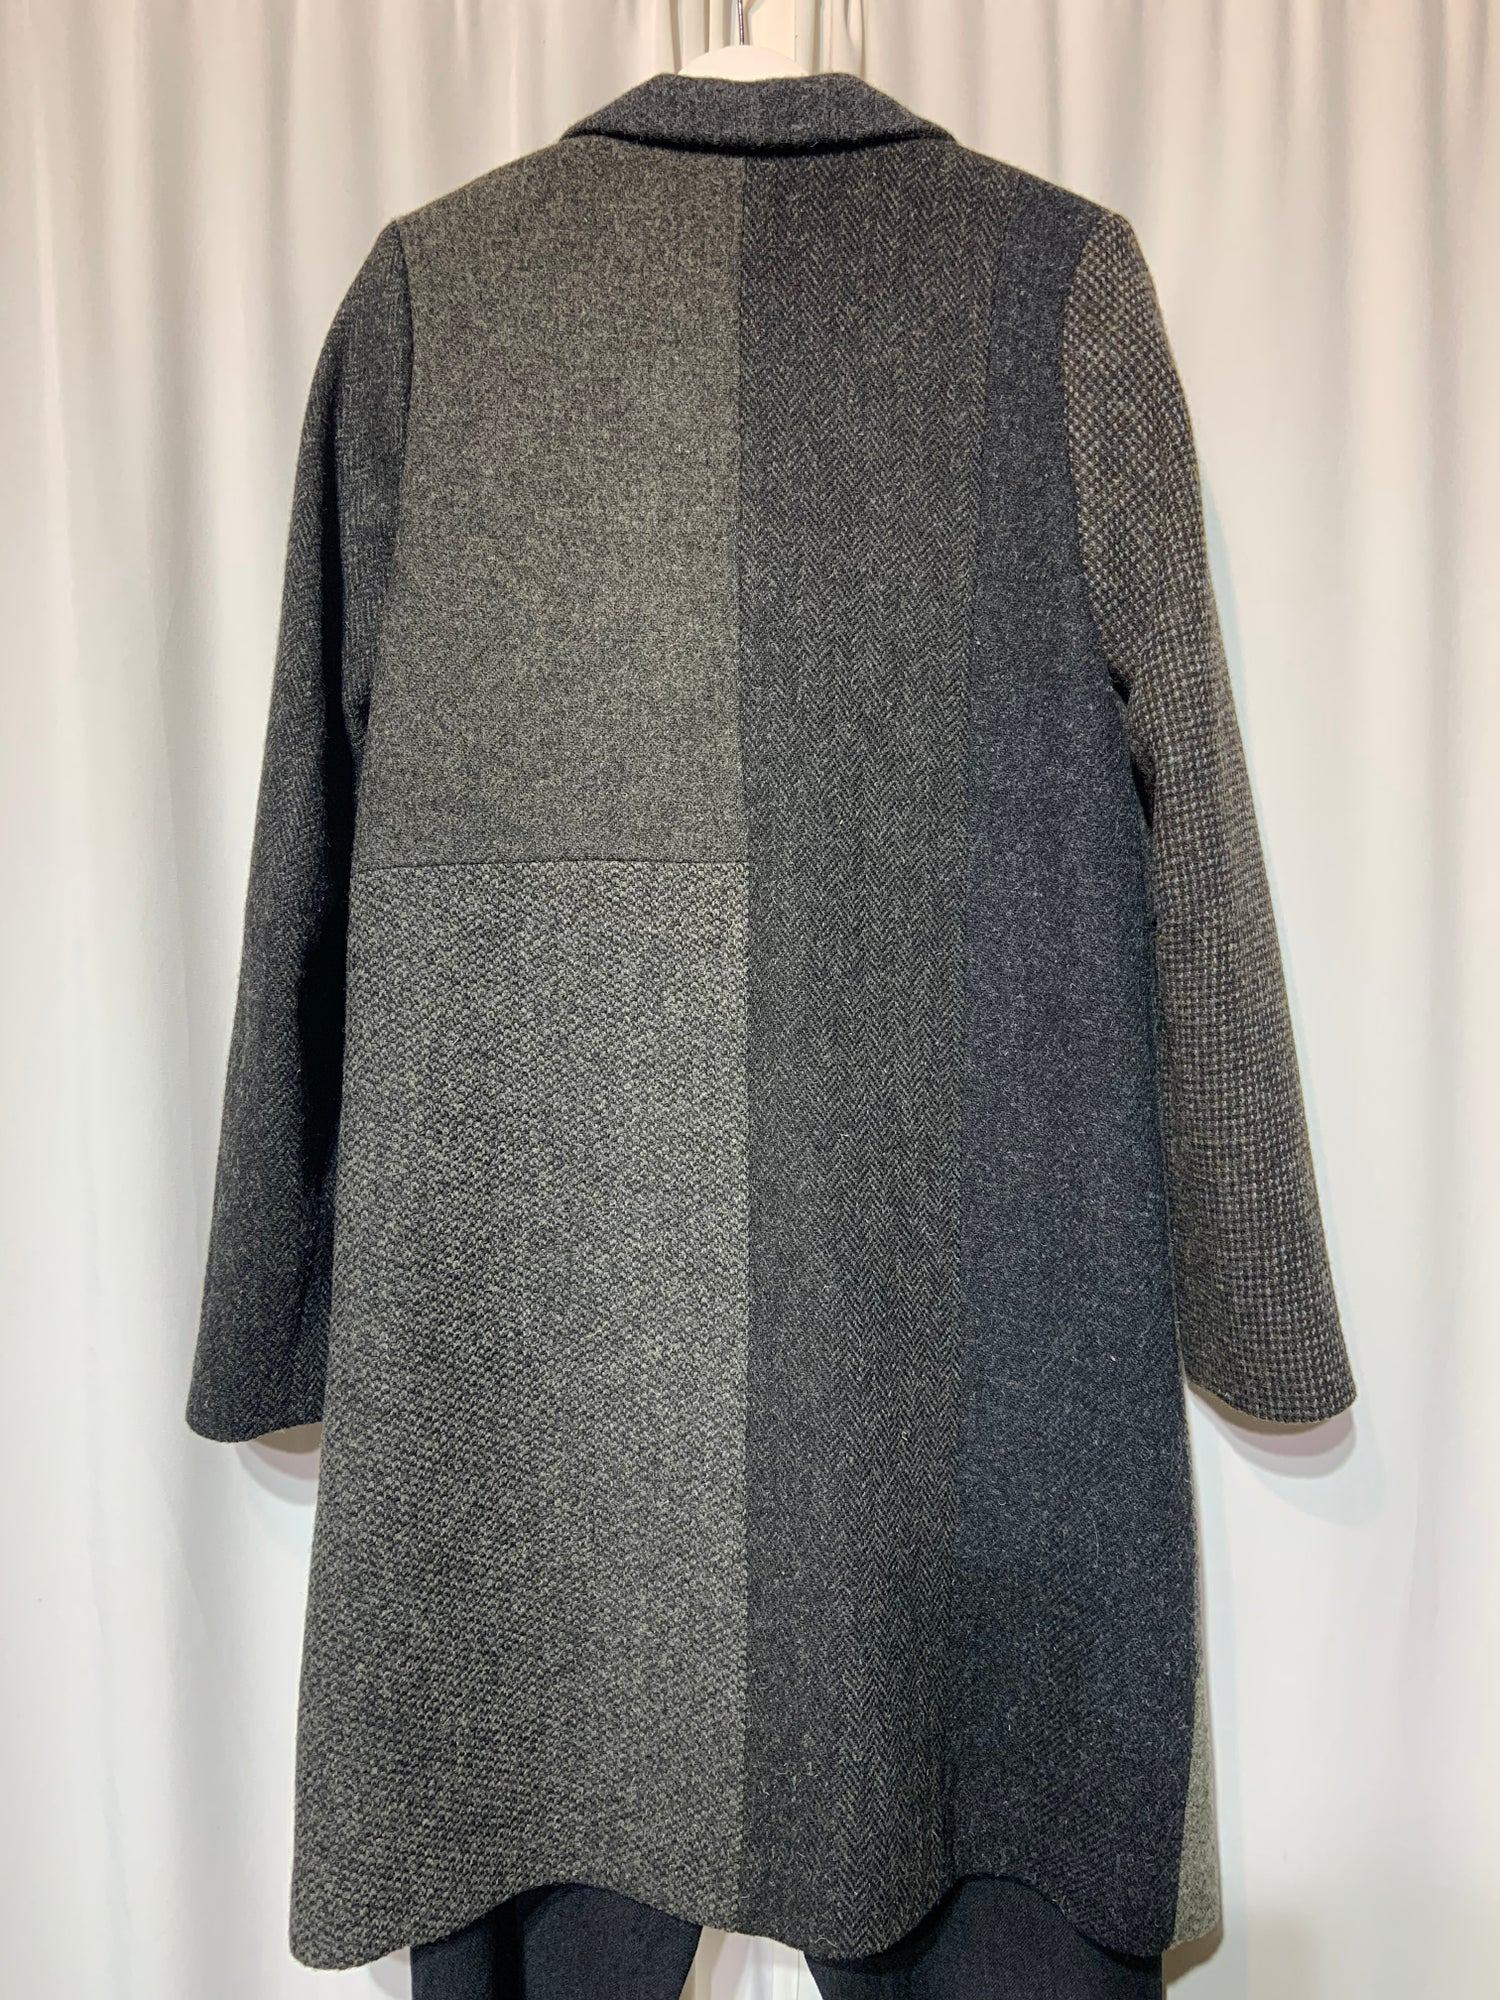 Image of NygardsAnna Harris Tweed Coat